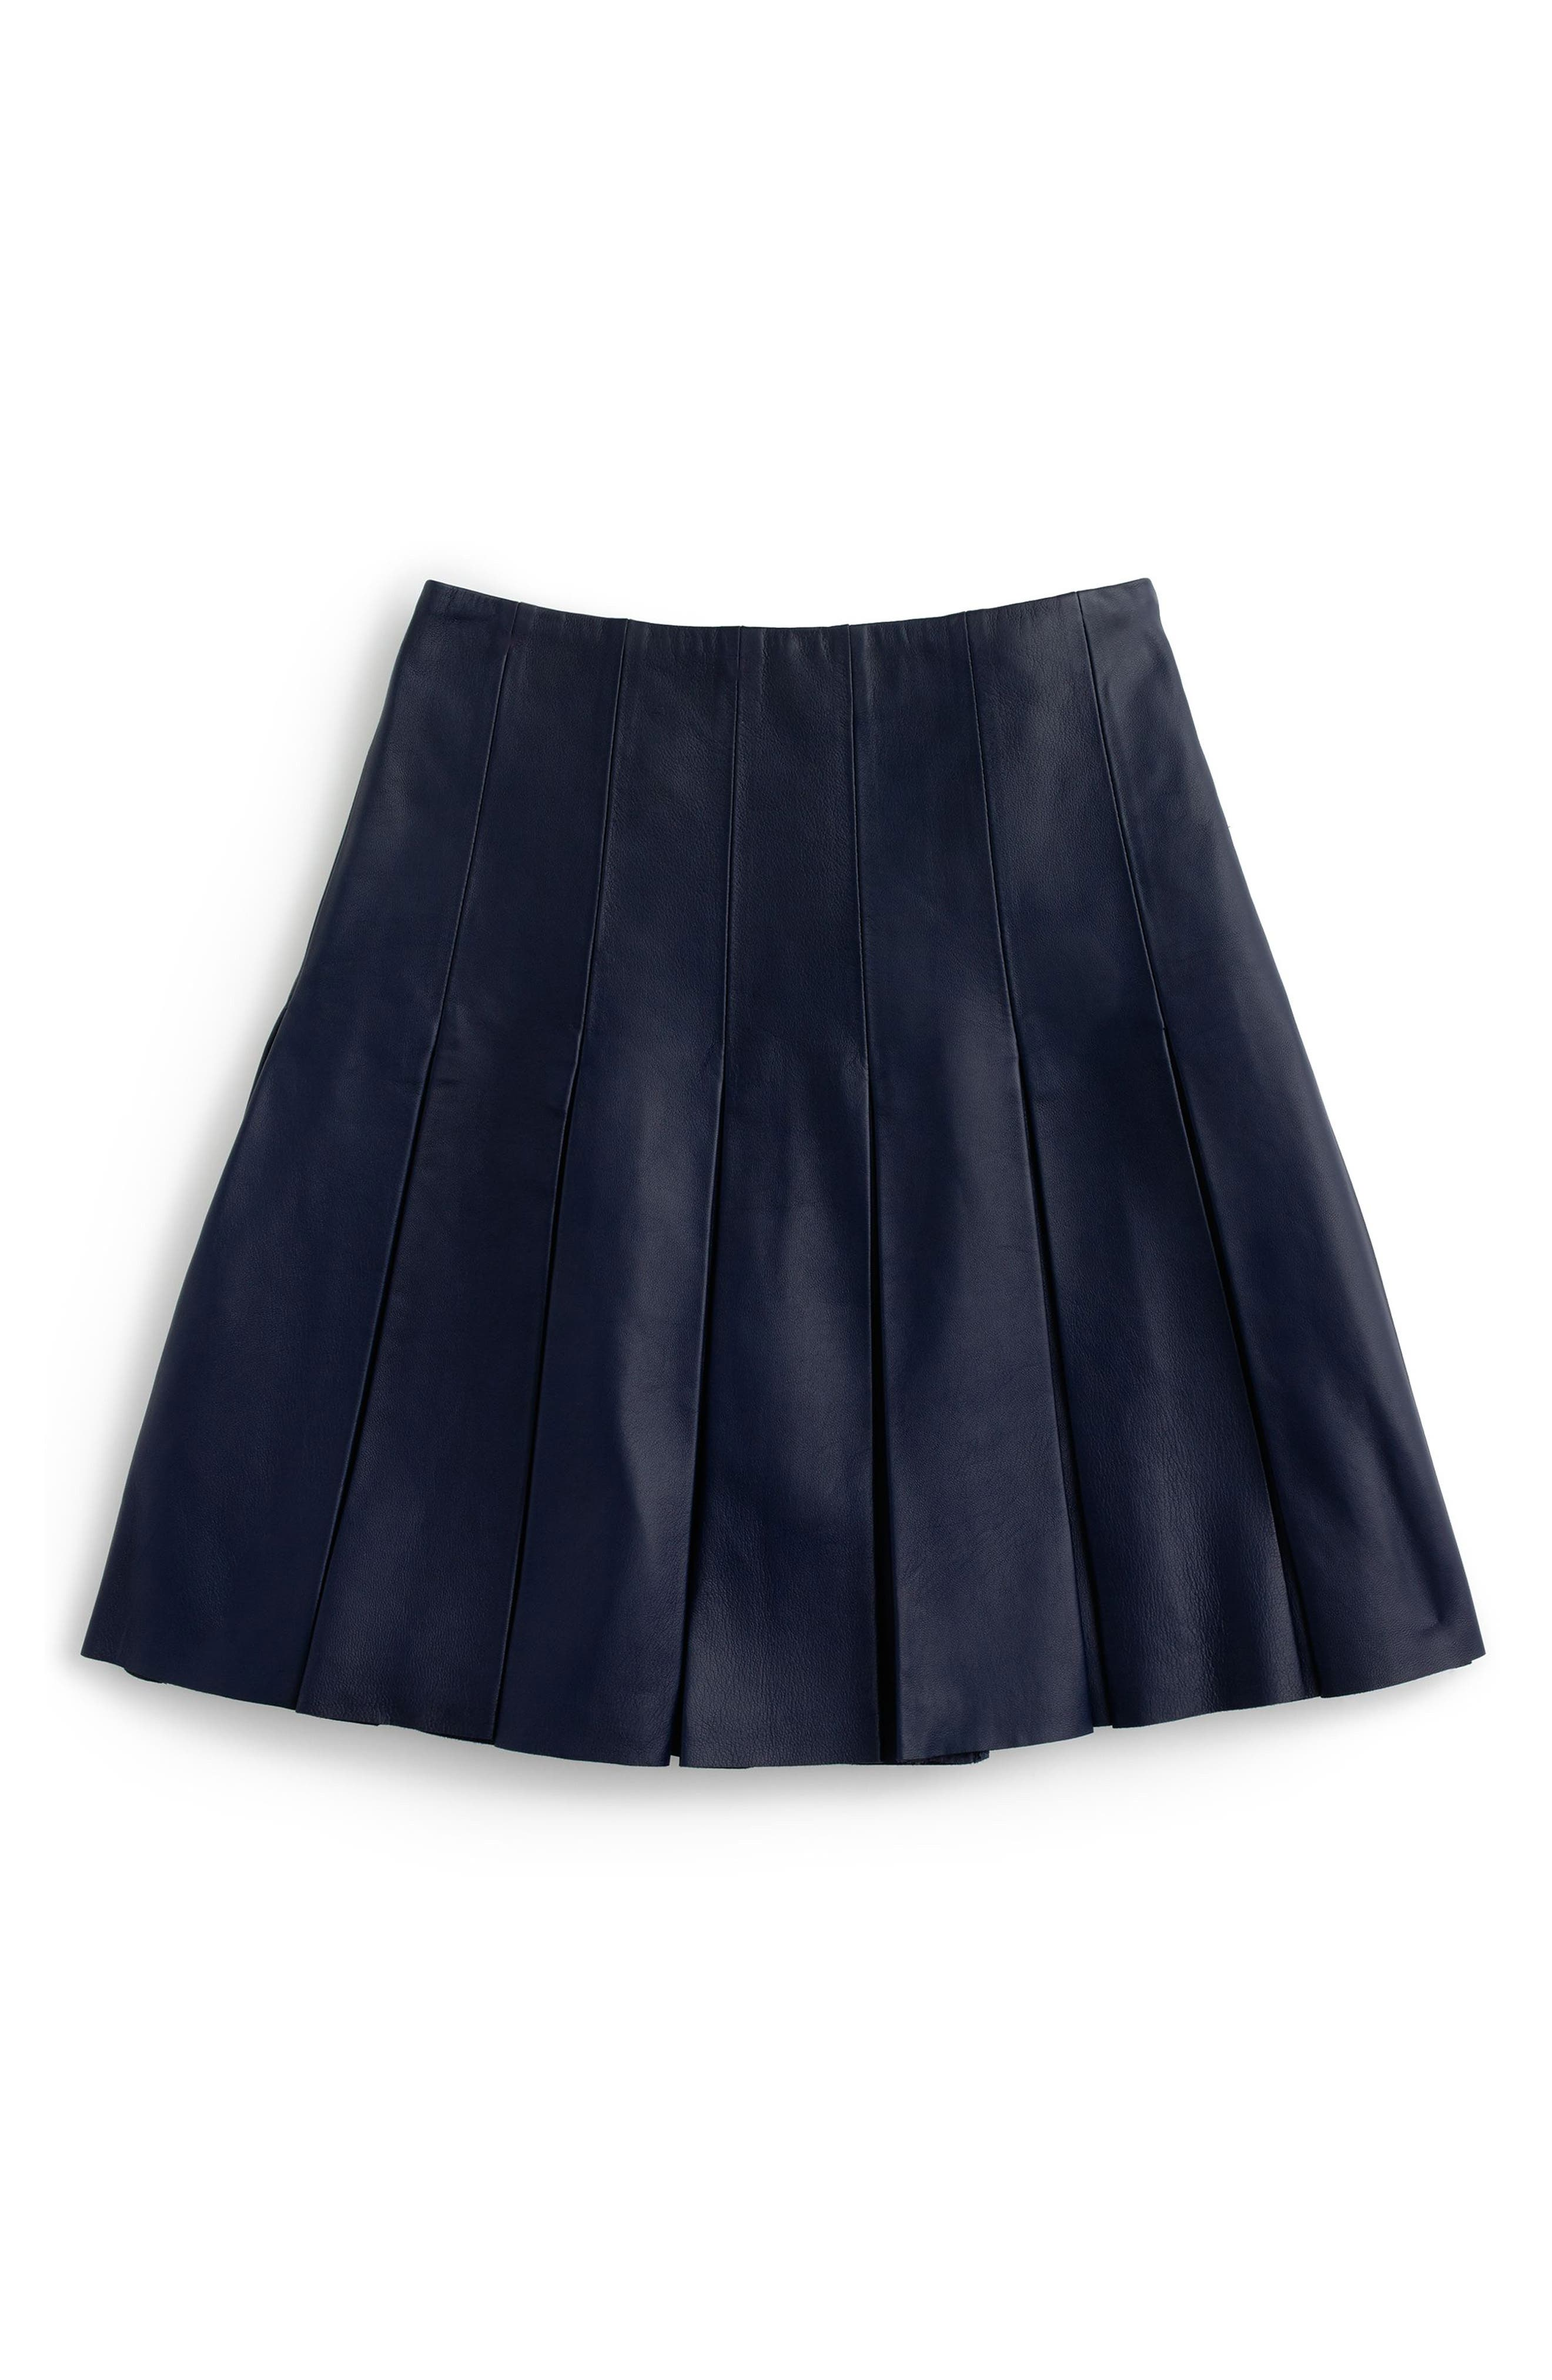 Alternate Image 3  - J.Crew Collection Drop Pleat Leather Skirt